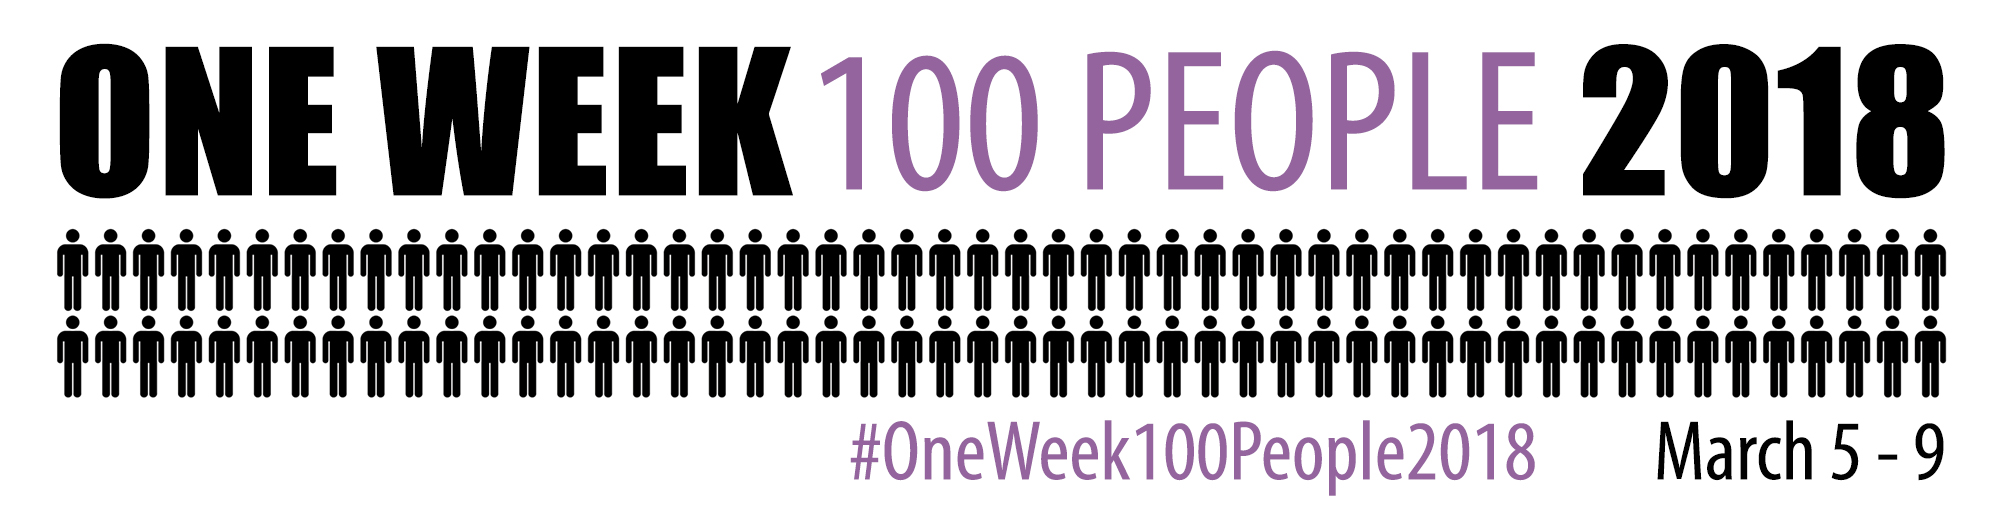 #oneweek100people2018